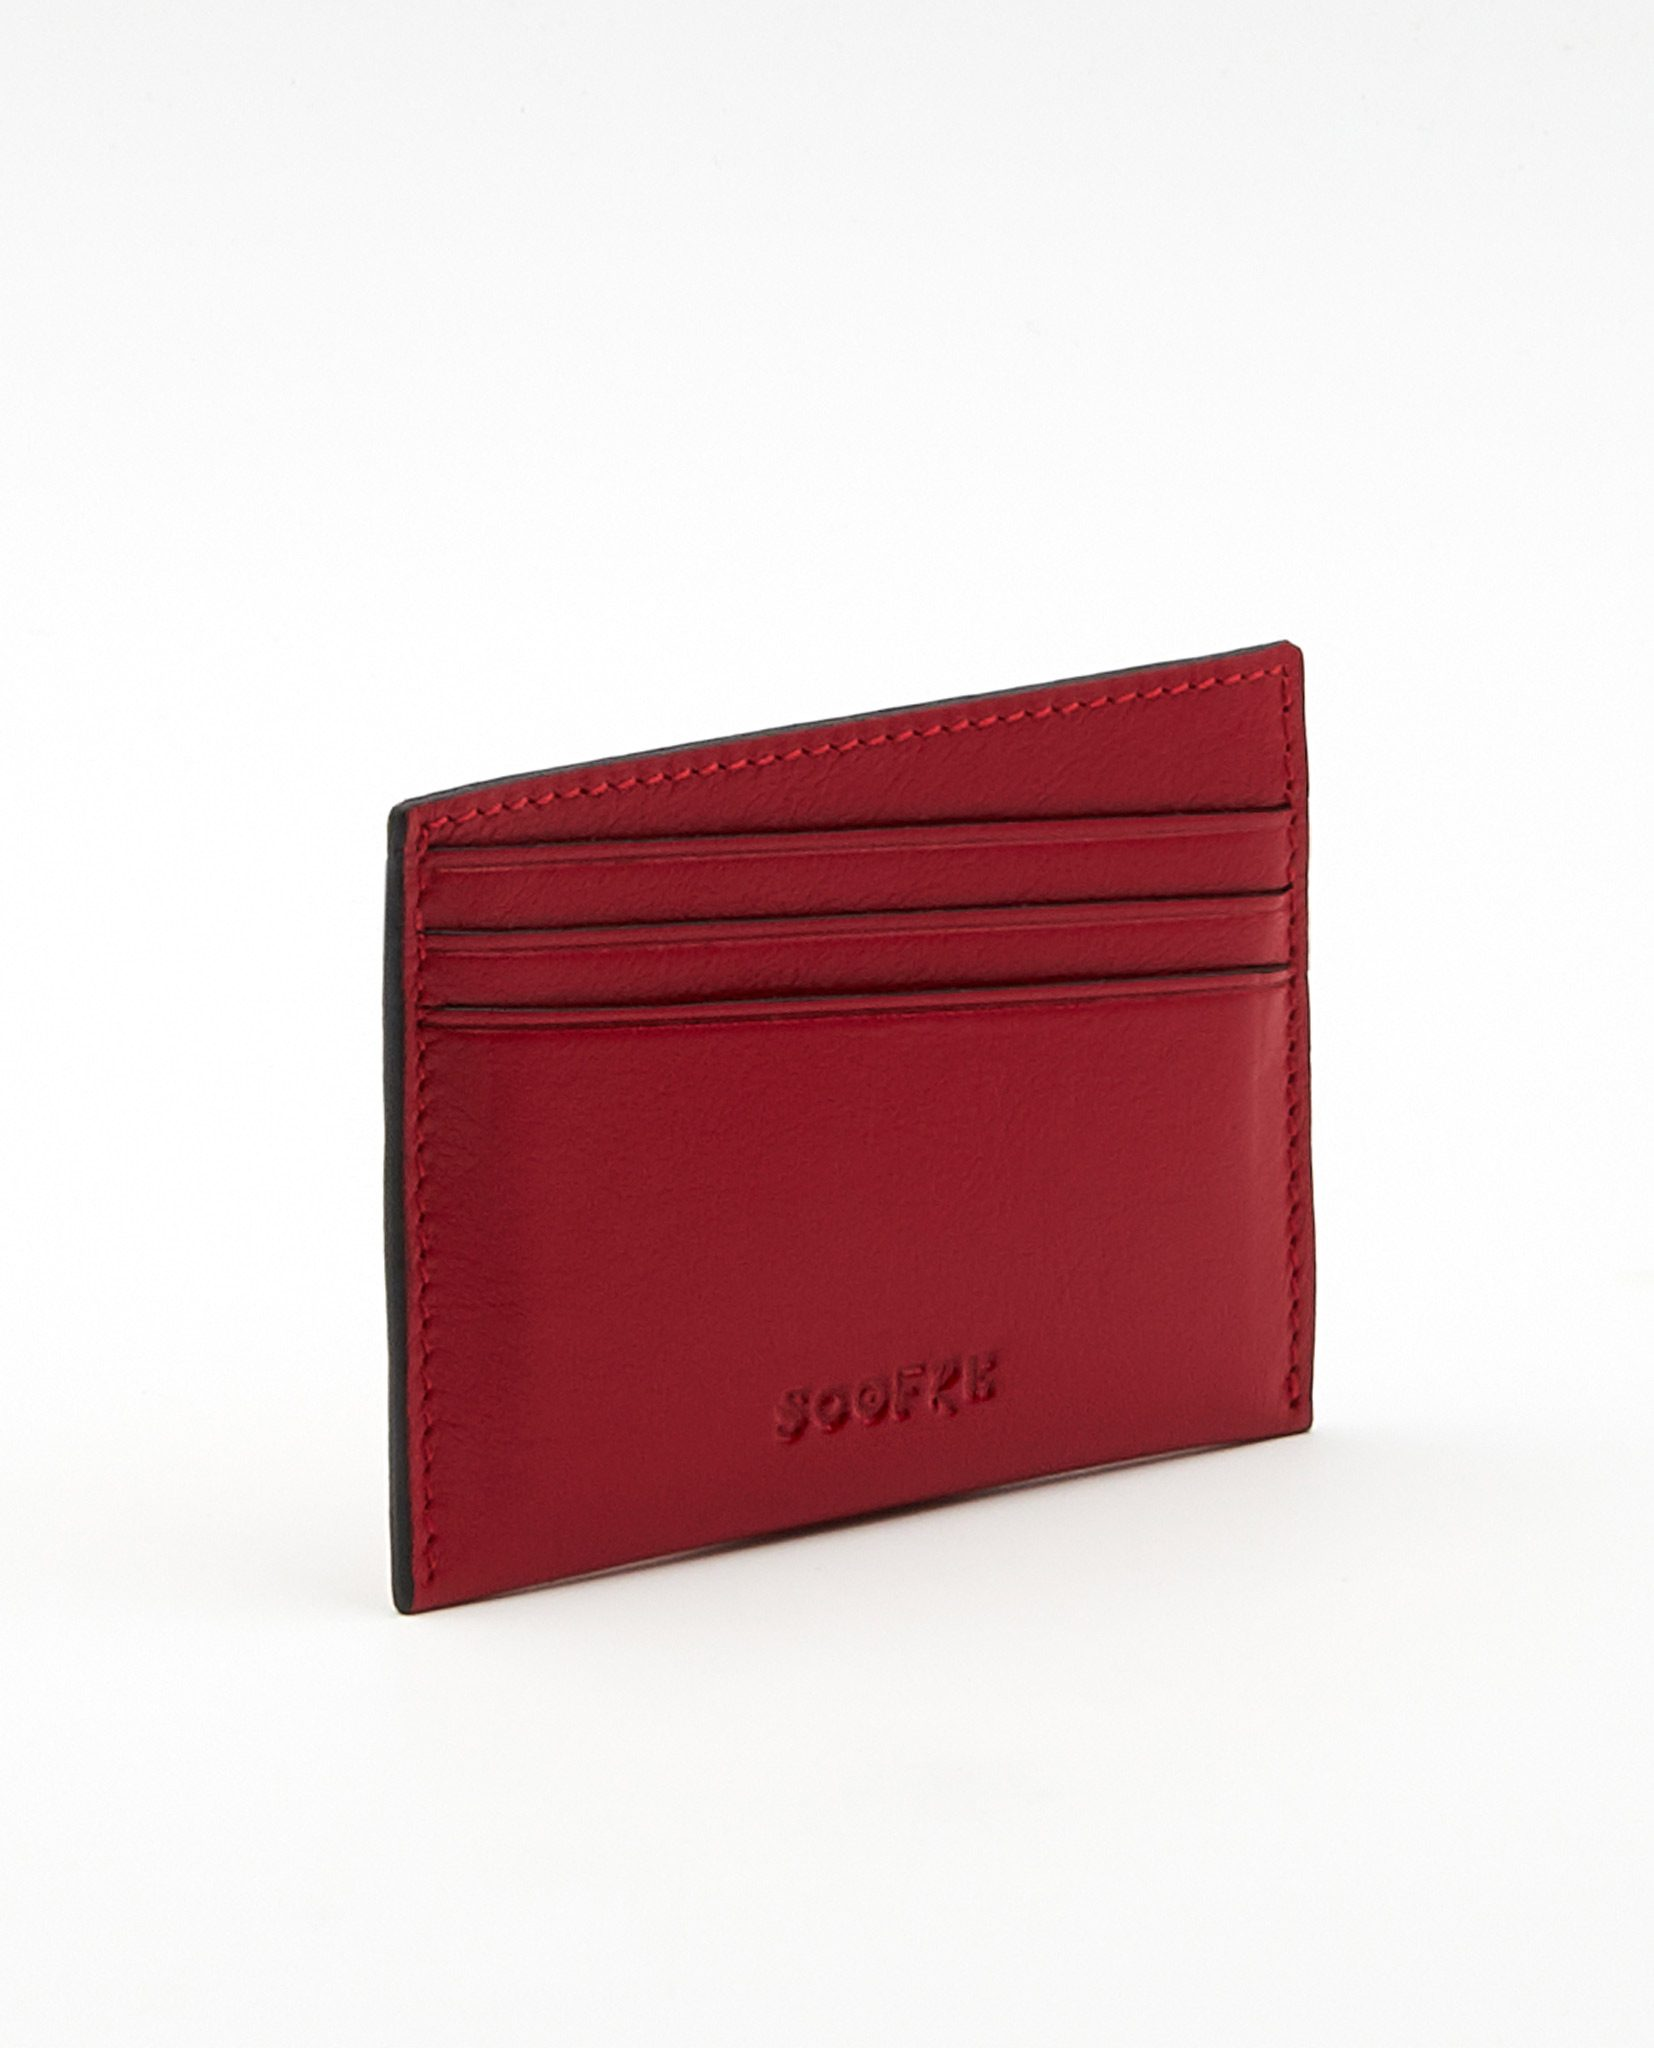 Soofre Card Holder Smooth Leather Red-Black